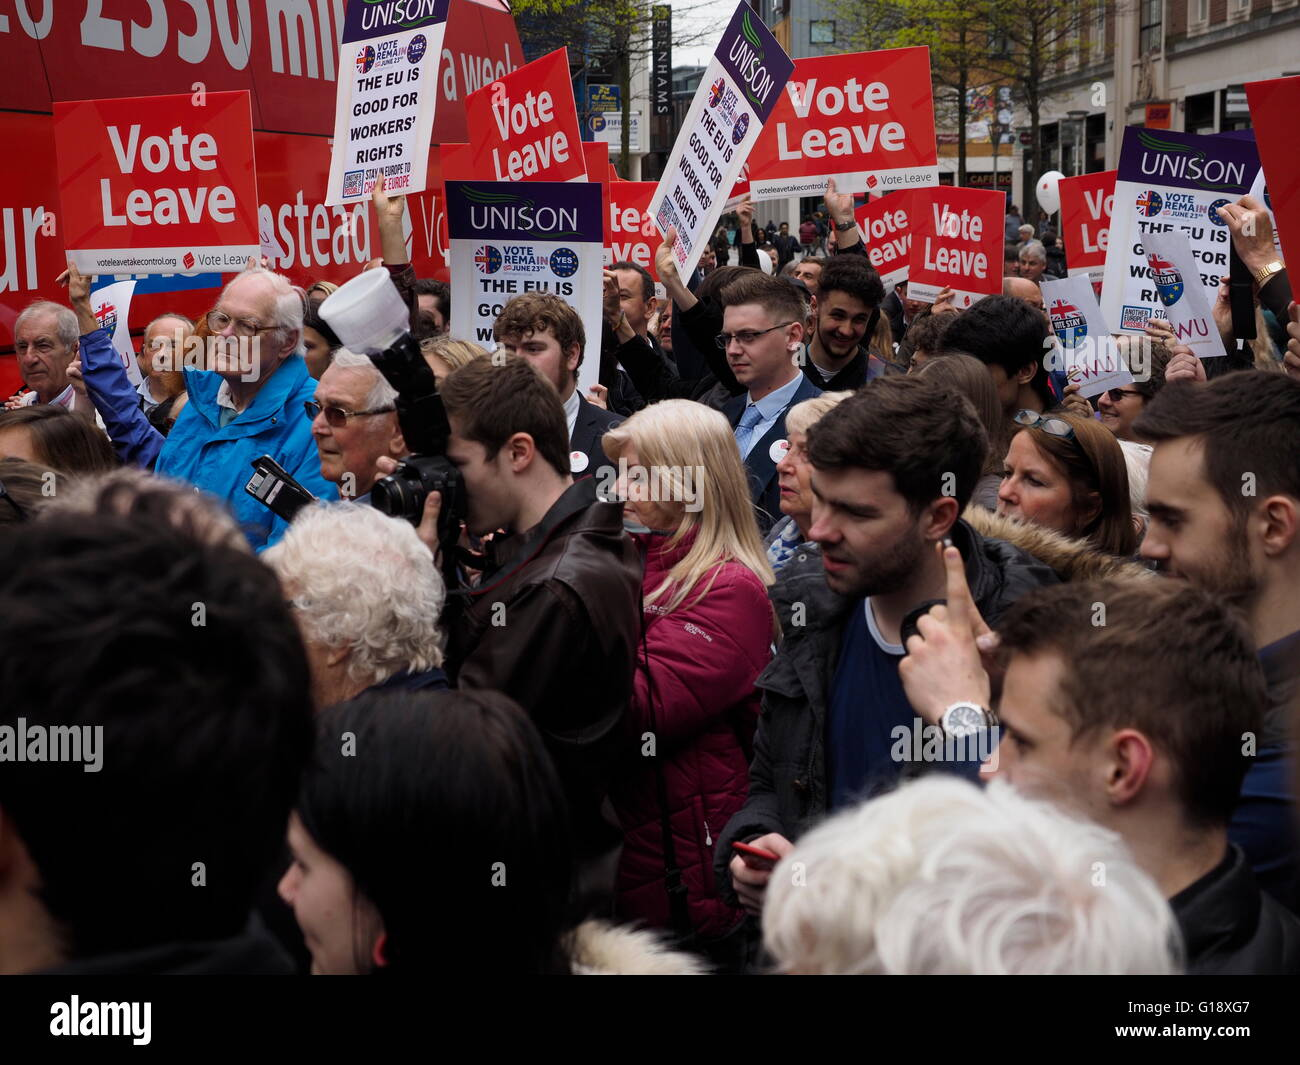 Exeter UK 11 May 2016 Brexit Battle Bus arrives in Exeter. demonstrators supporters demonstrate © Anthony Collins/Alamy - Stock Image